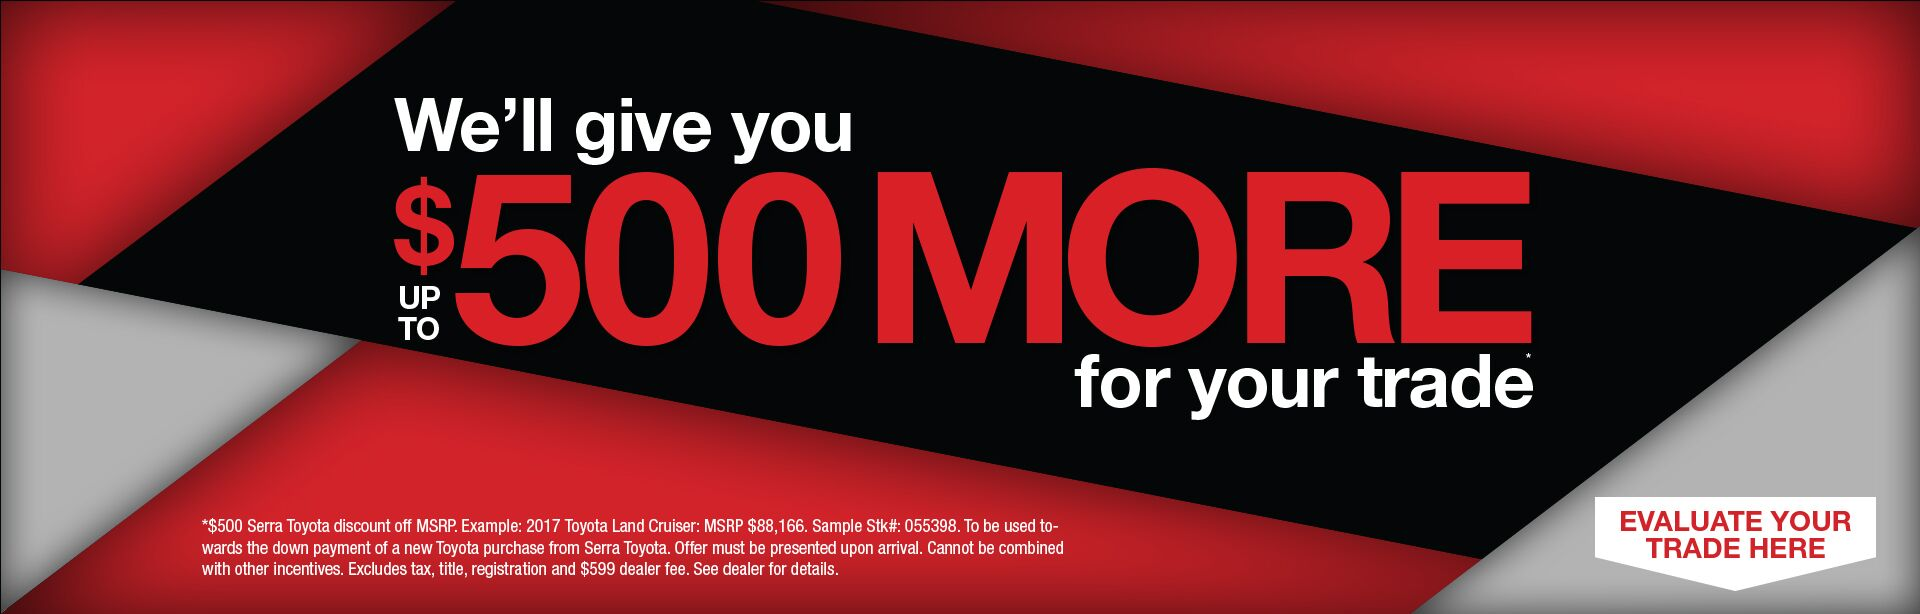 Plan your next road trip with Avis Rent a Car coupons a.